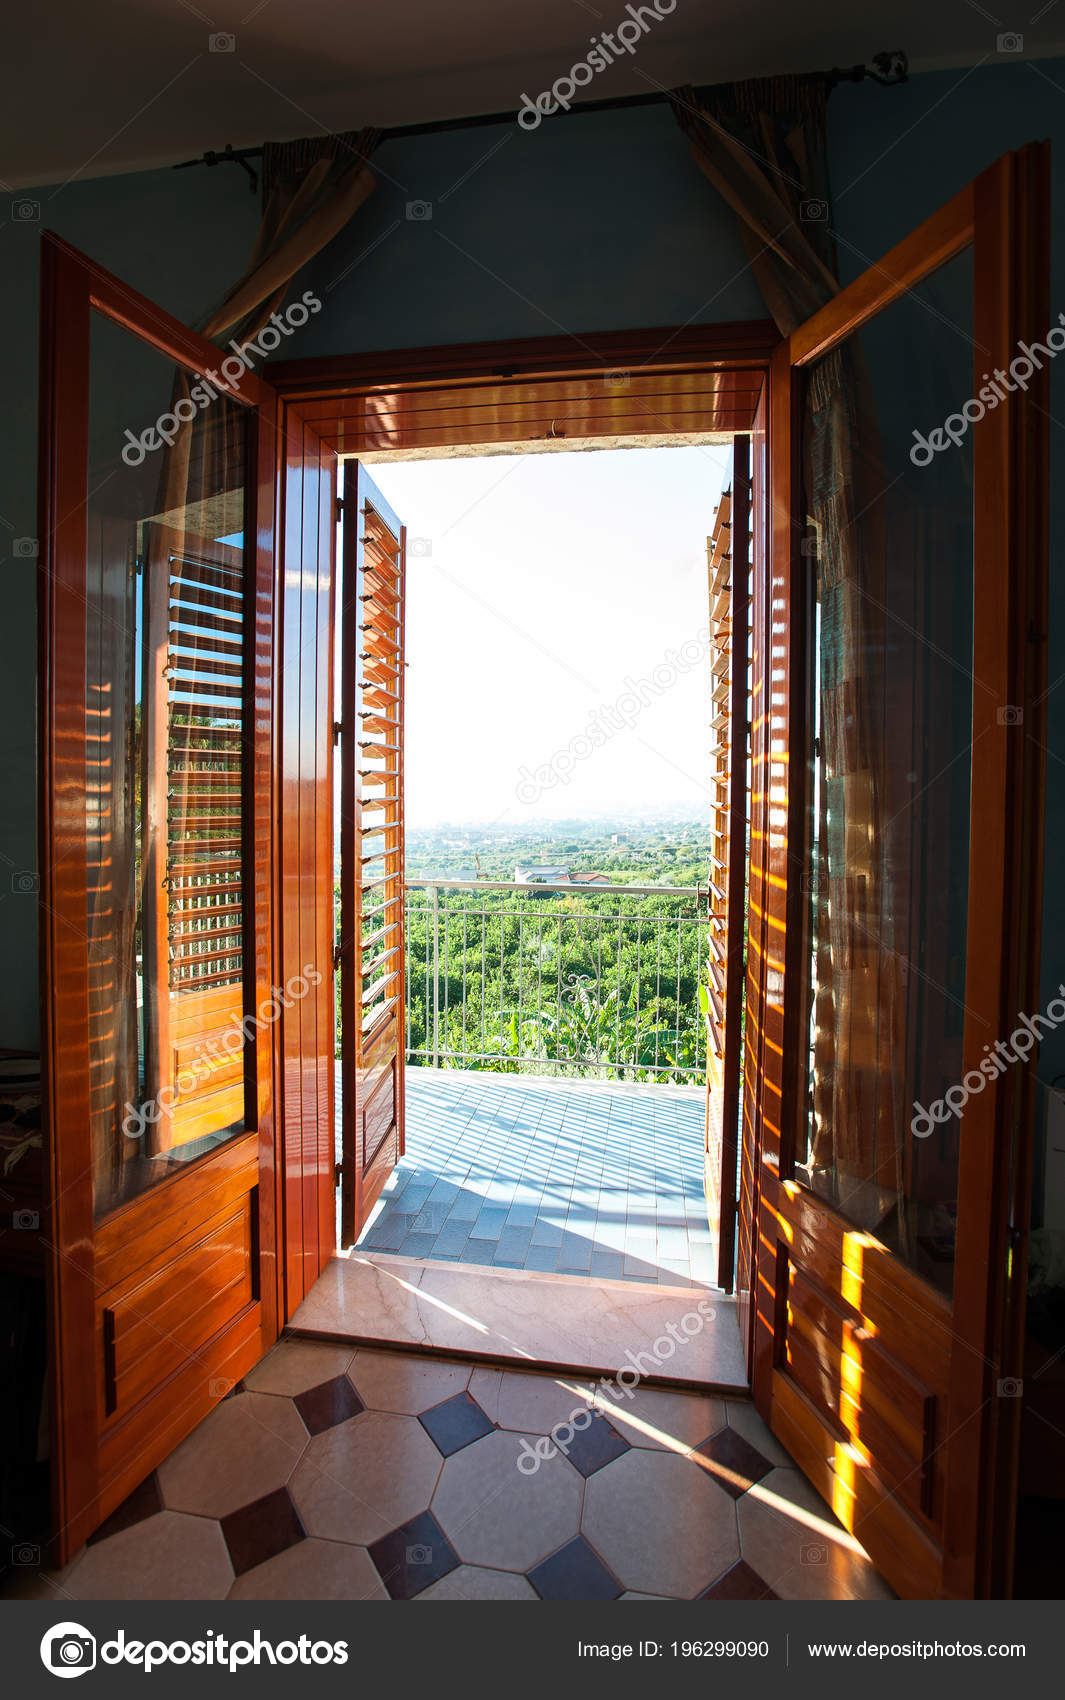 Opened Brown Wooden Shutters Balcony Window Spectacular View